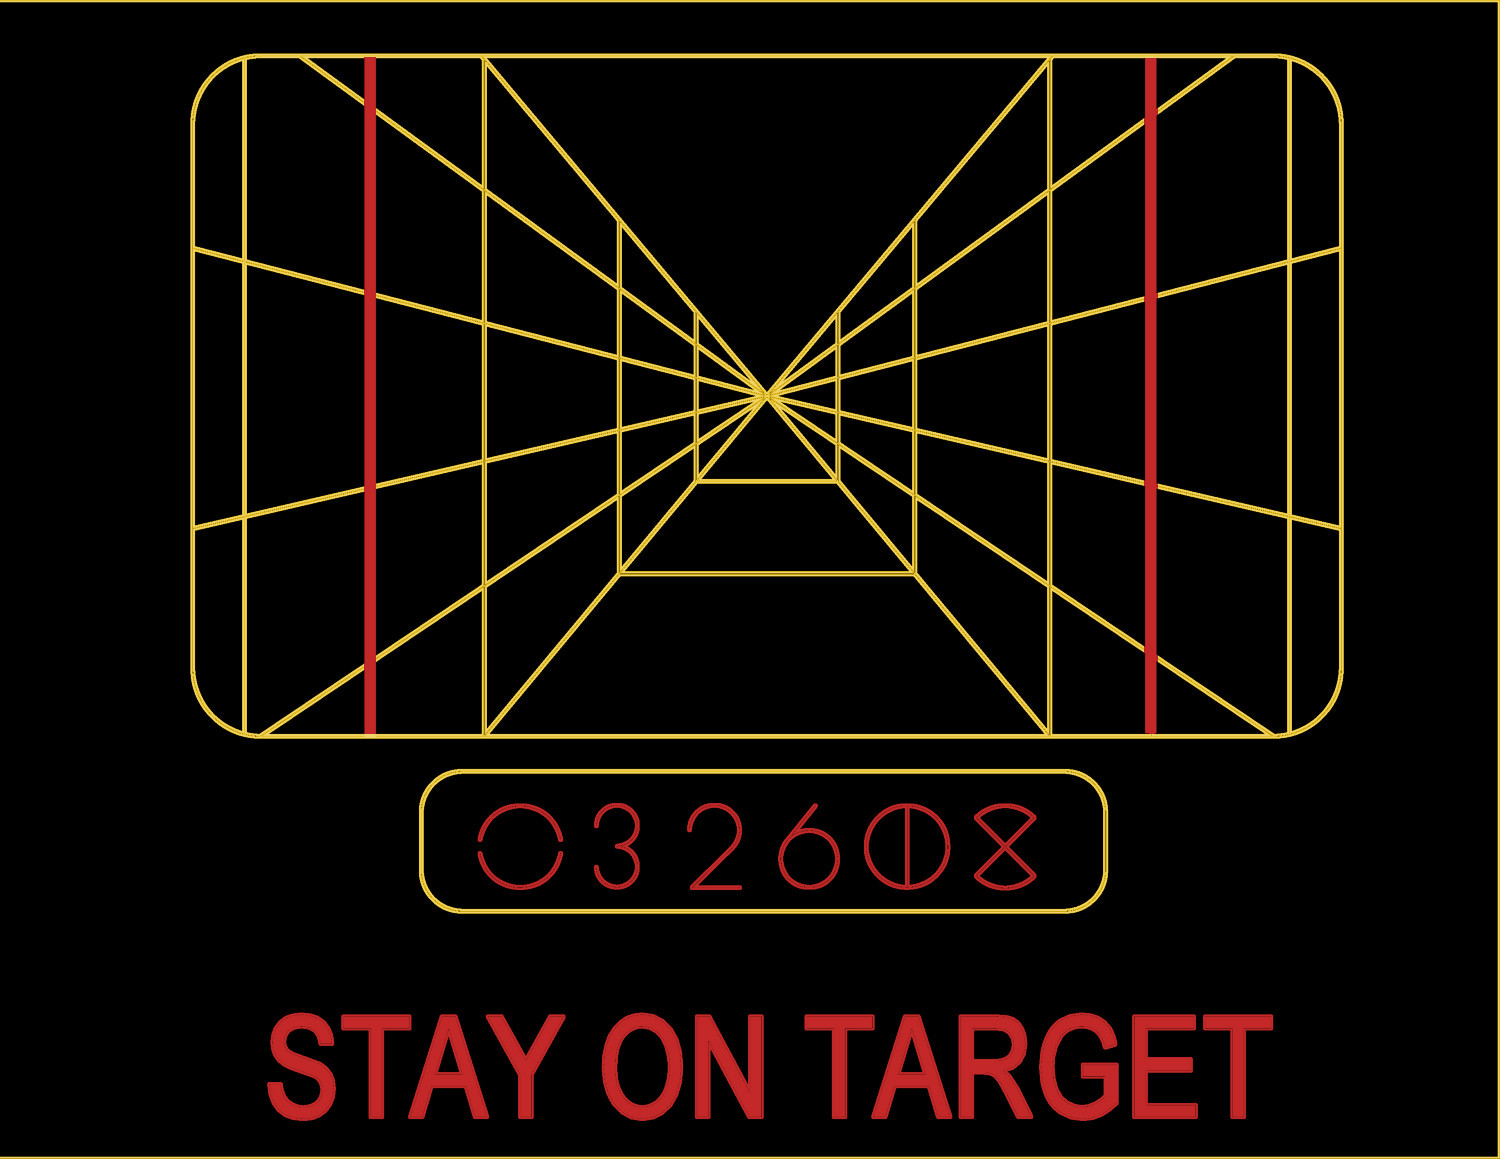 80ee32504af2 STAY ON TARGET T-shirt Luke Skywalker yellow text font line